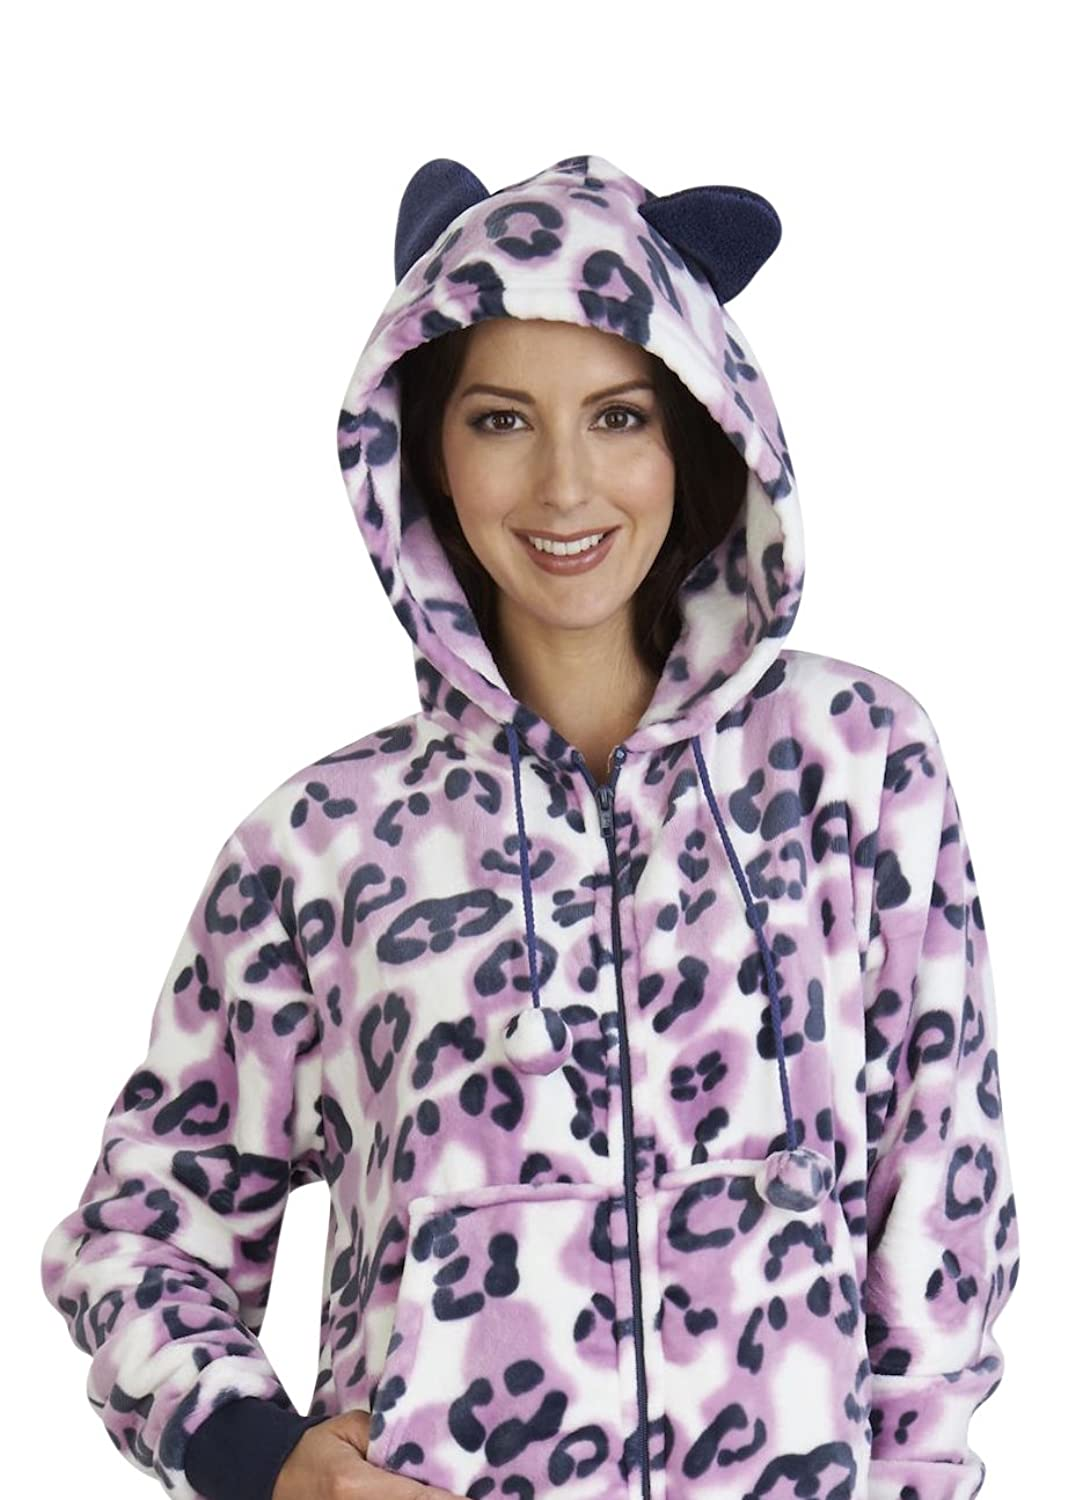 Slenderella Pyjamas Luxury Flannel Fleece Hooded Animal Leopard PJ 10 12 14 16 18 20 22